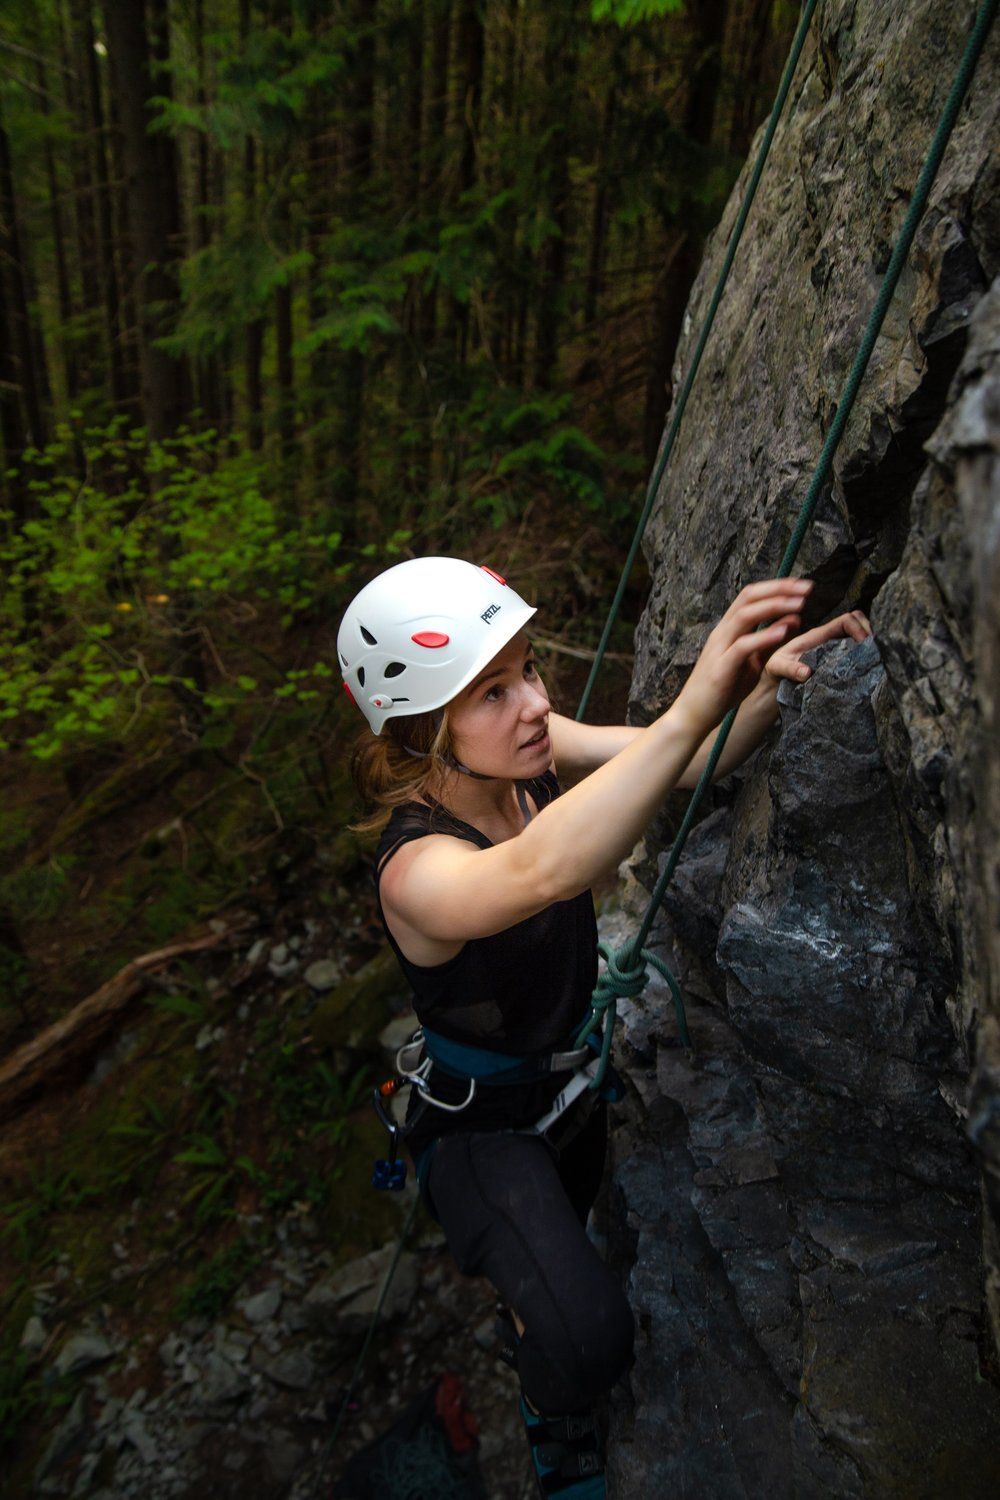 Danielle Seymour climbing at The Motherland climbing area during the Never Stop Moving Exit 38 Climbing Series.  Photo Credit:   Heather Dubrall Photography  [ photo cropped ]